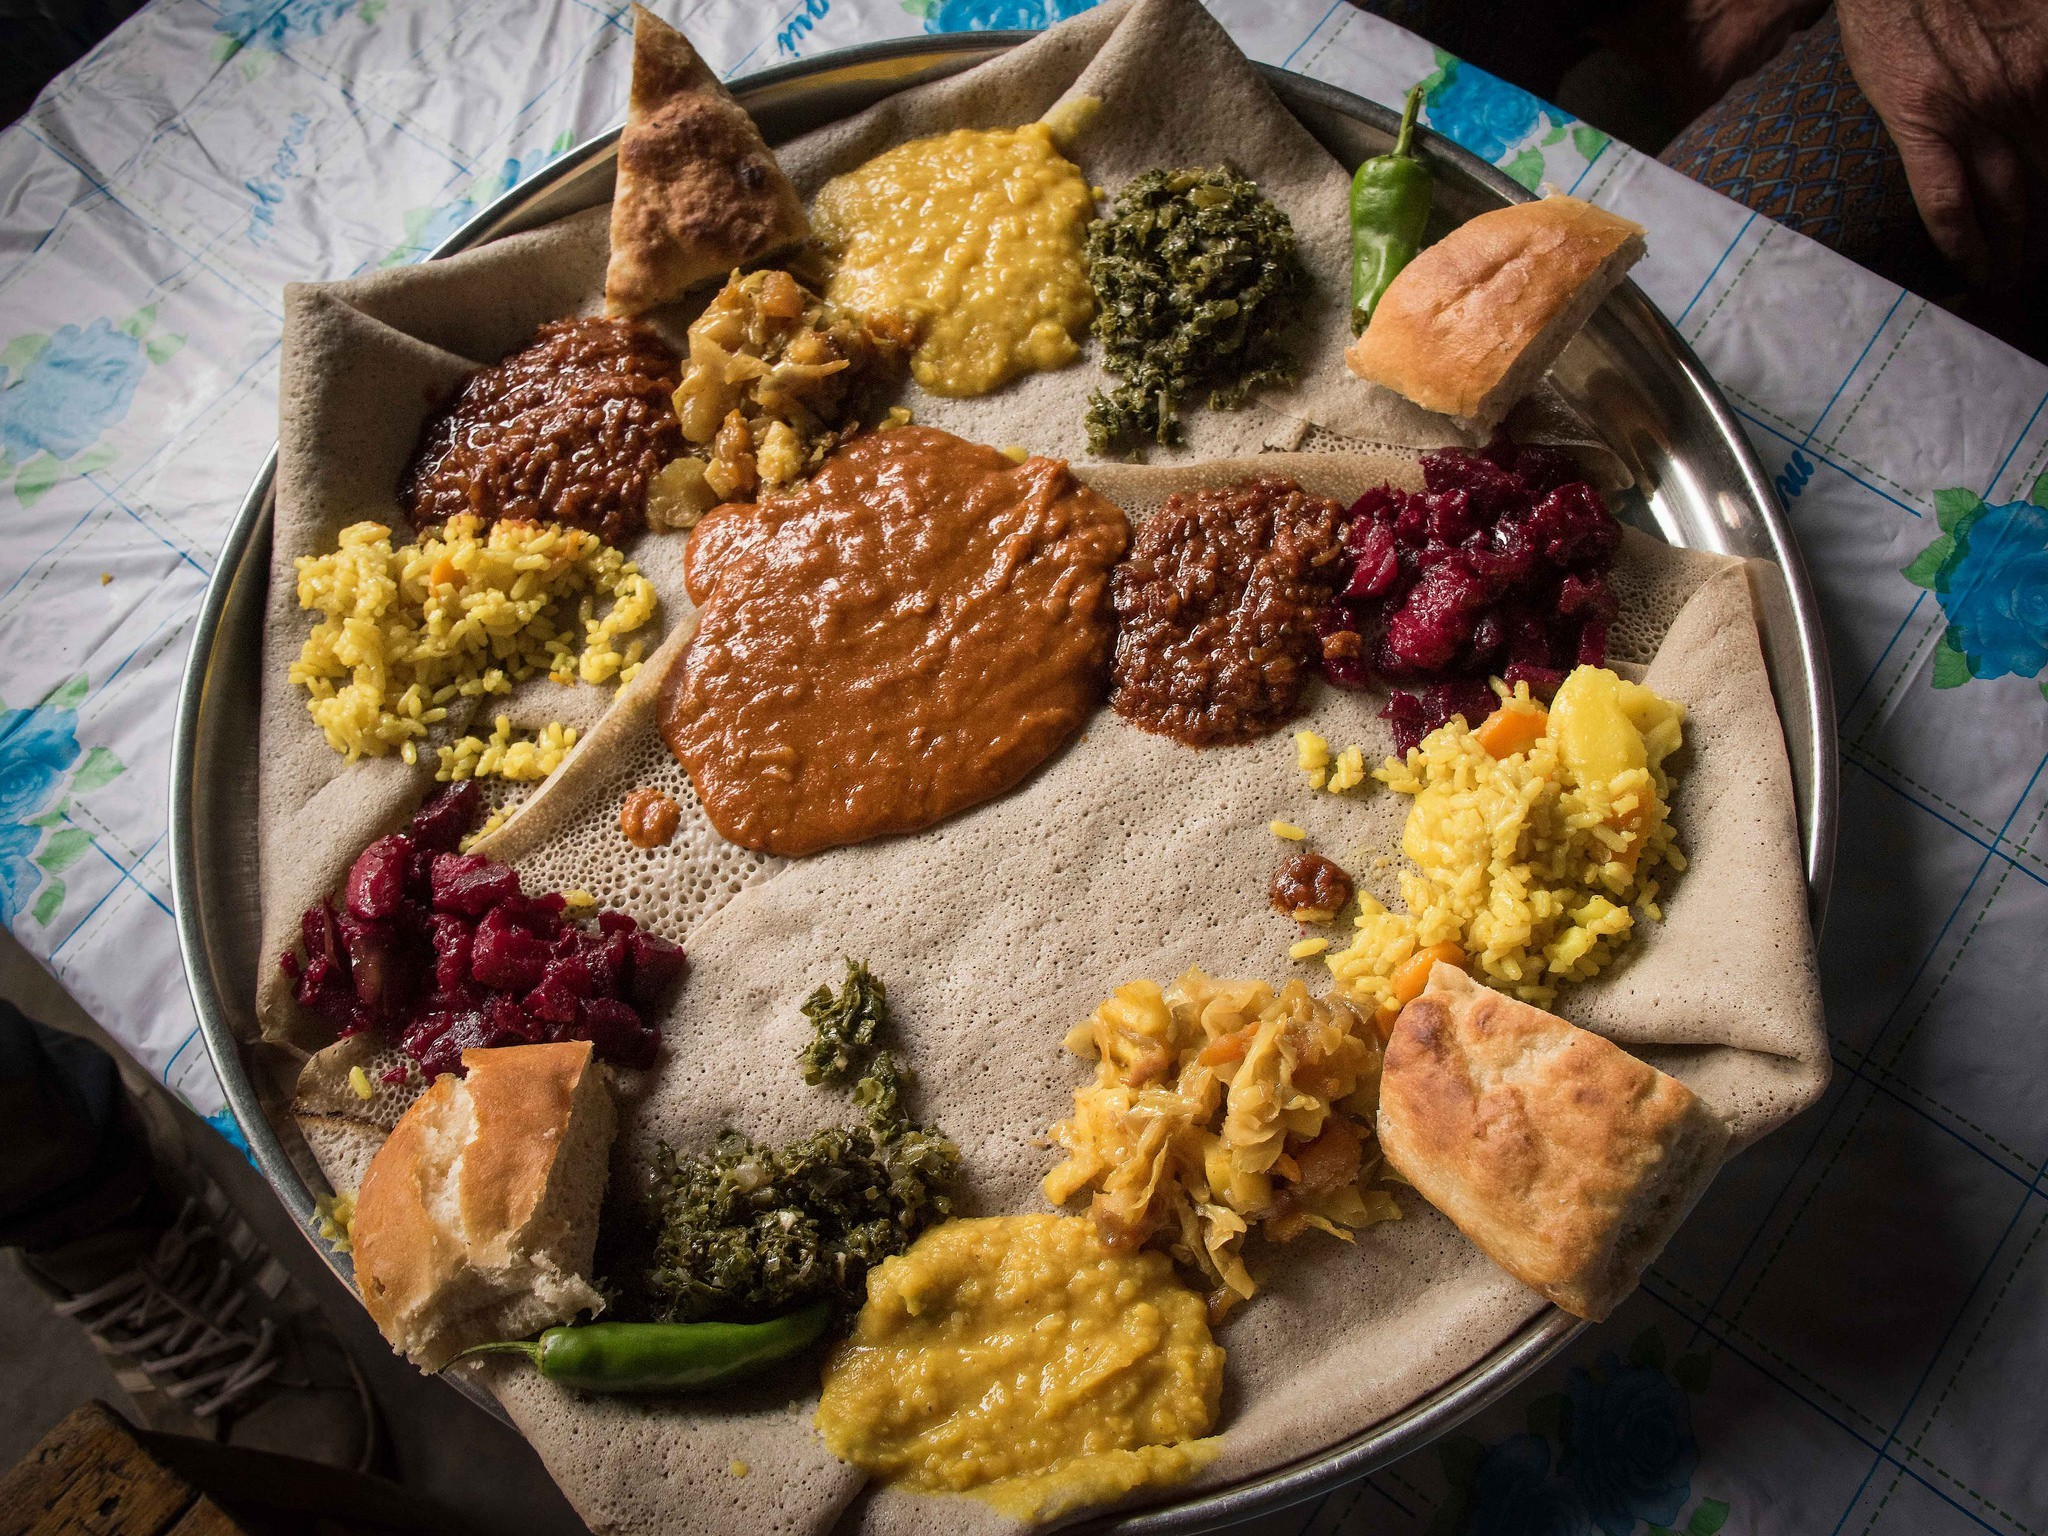 Traditional Ethiopian curries served on injera flatbread